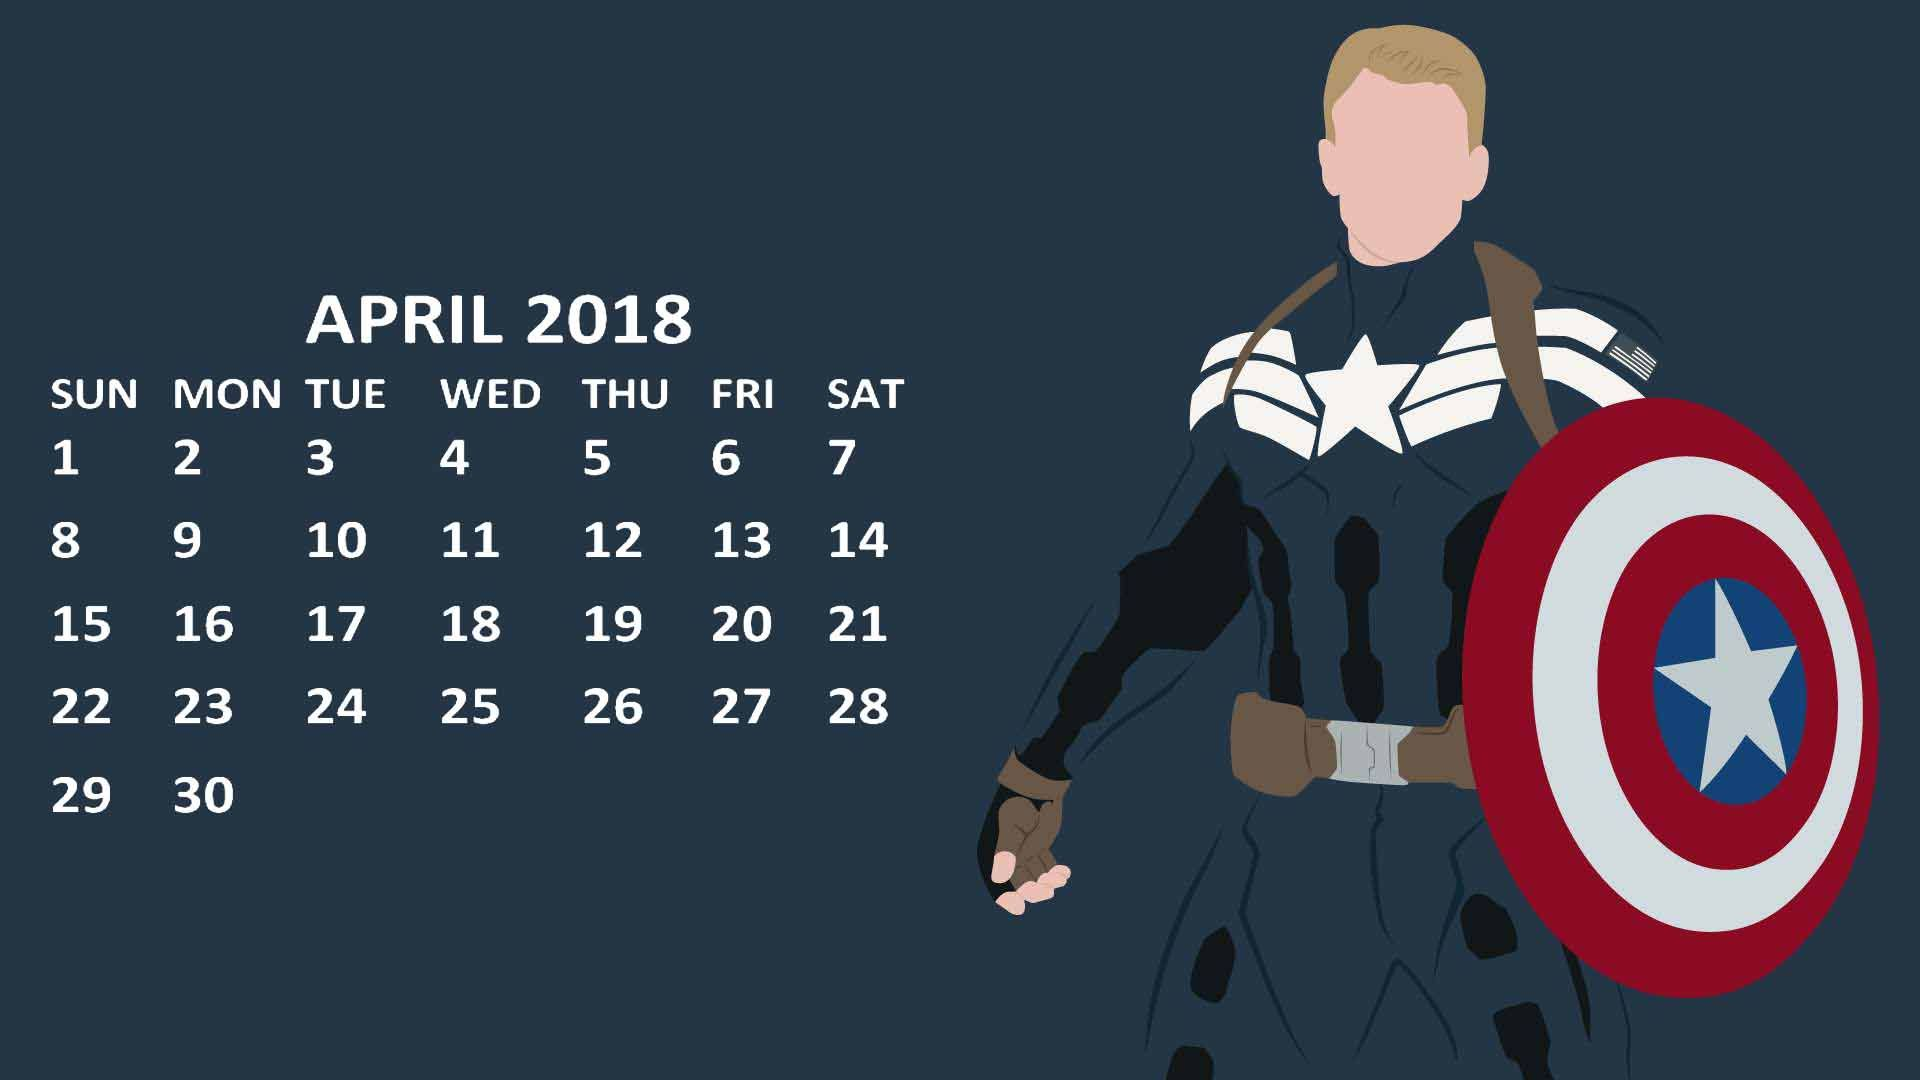 Wallpaper Calendar Superhero : Marvel captain america april calendar